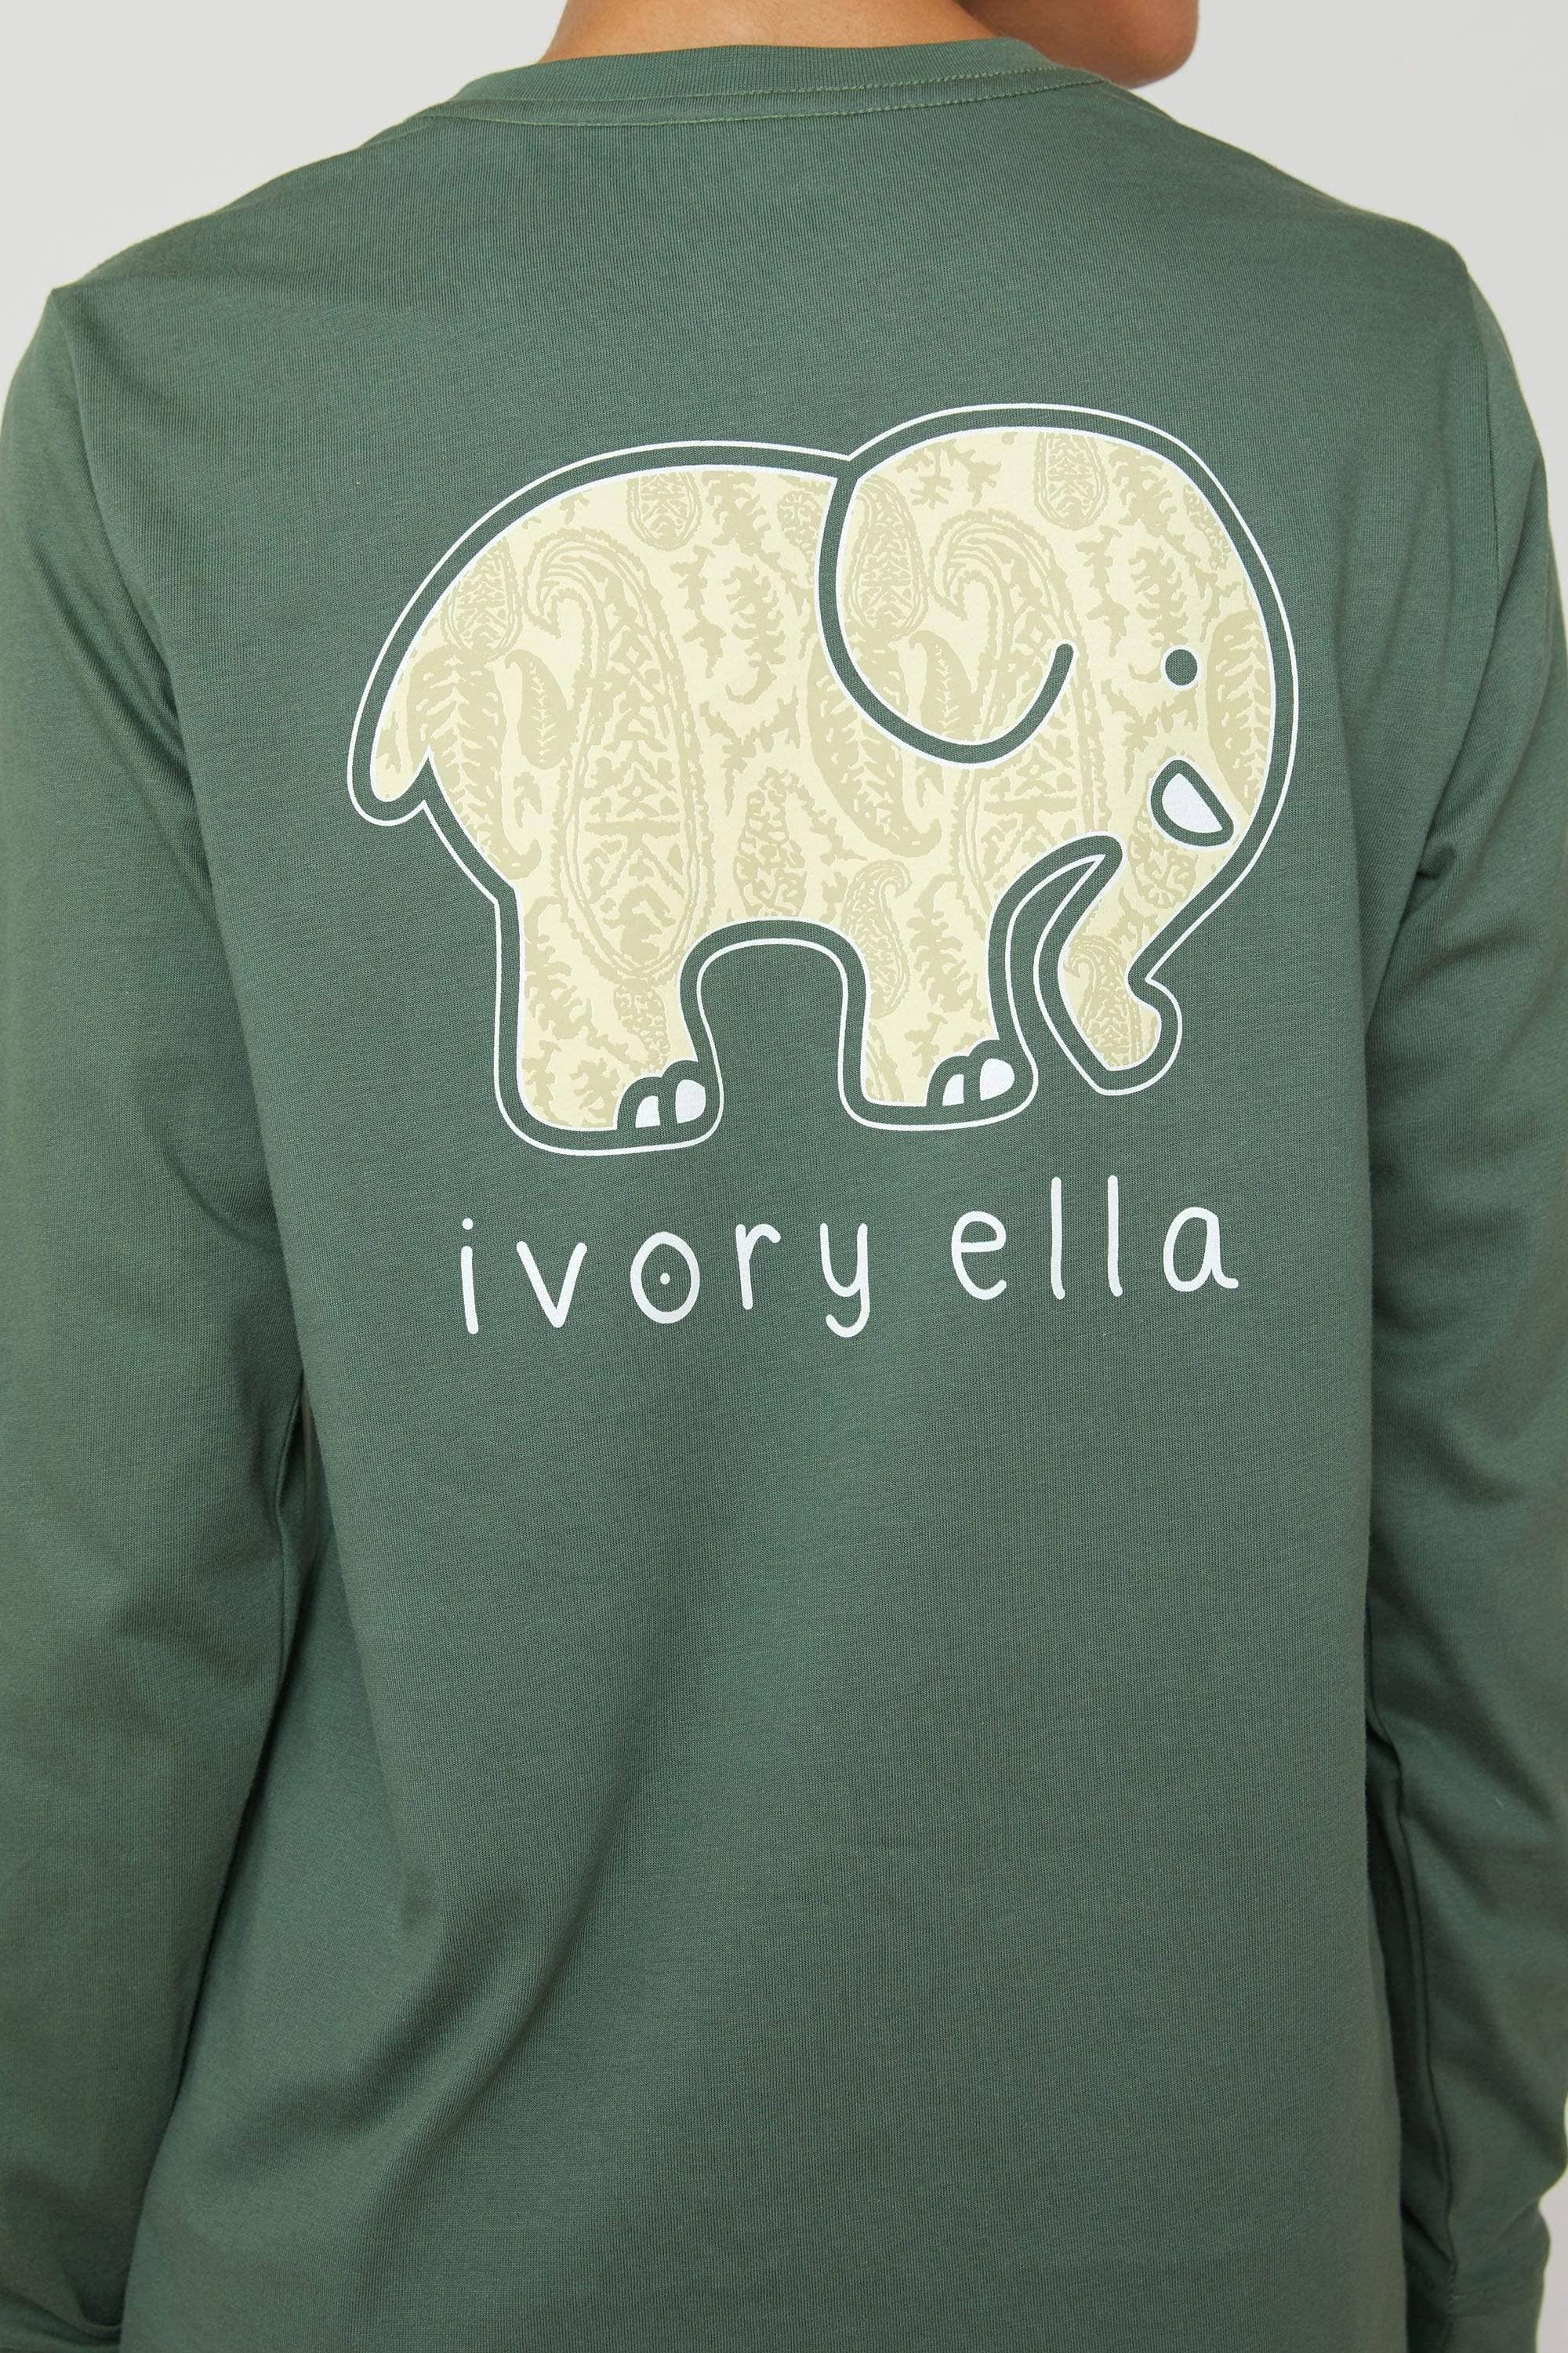 Duck Green Cashemir Long Sleeve Ella Tee - Ivory Ella - Women's Long Sleeve Shirts